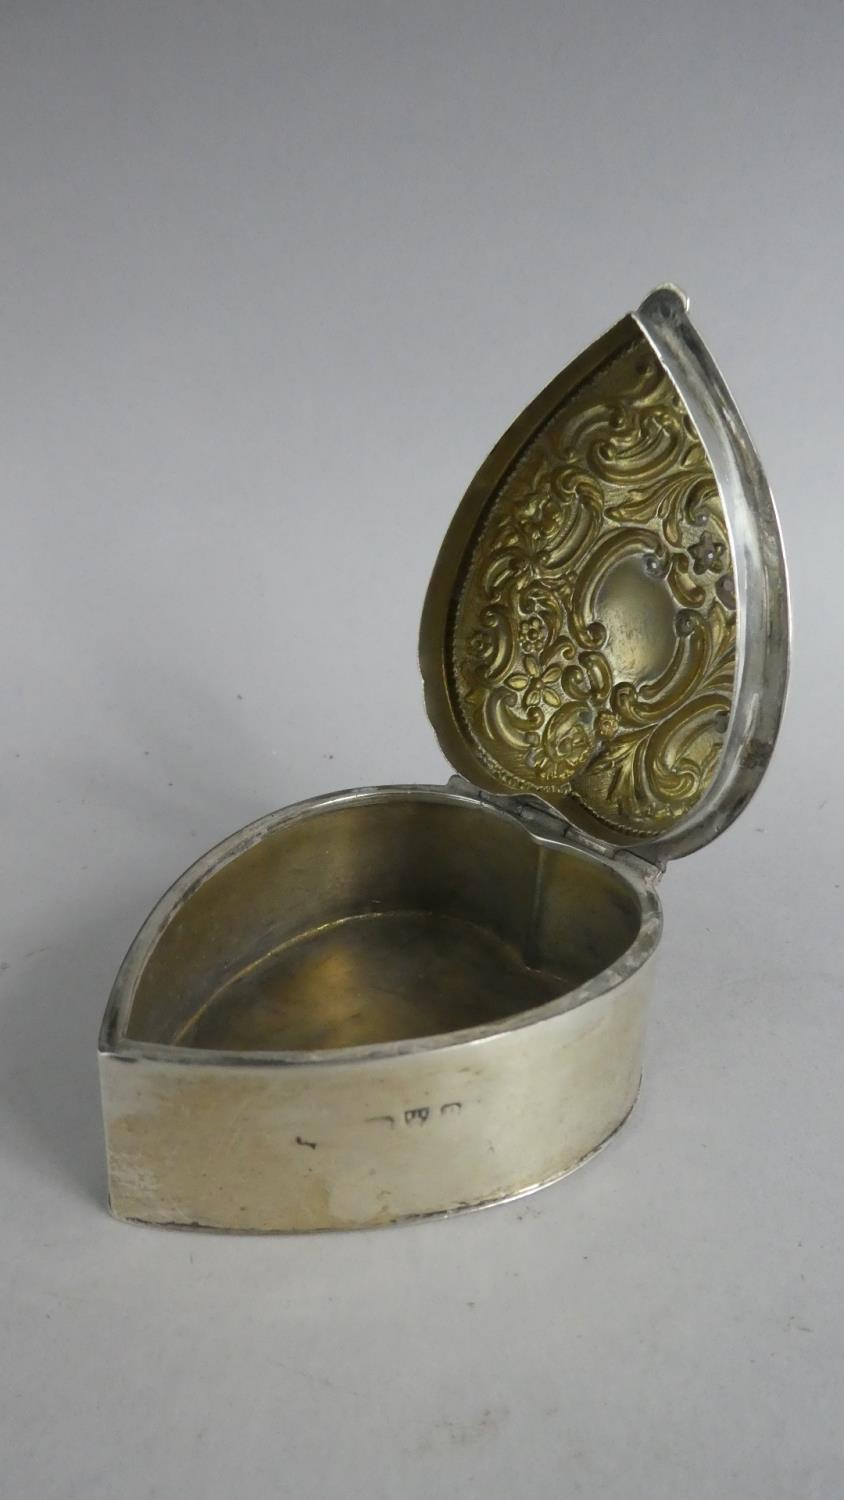 Two Heart Shaped Silver Boxes and a Silver Heart Shaped Pin Dish - Image 4 of 10